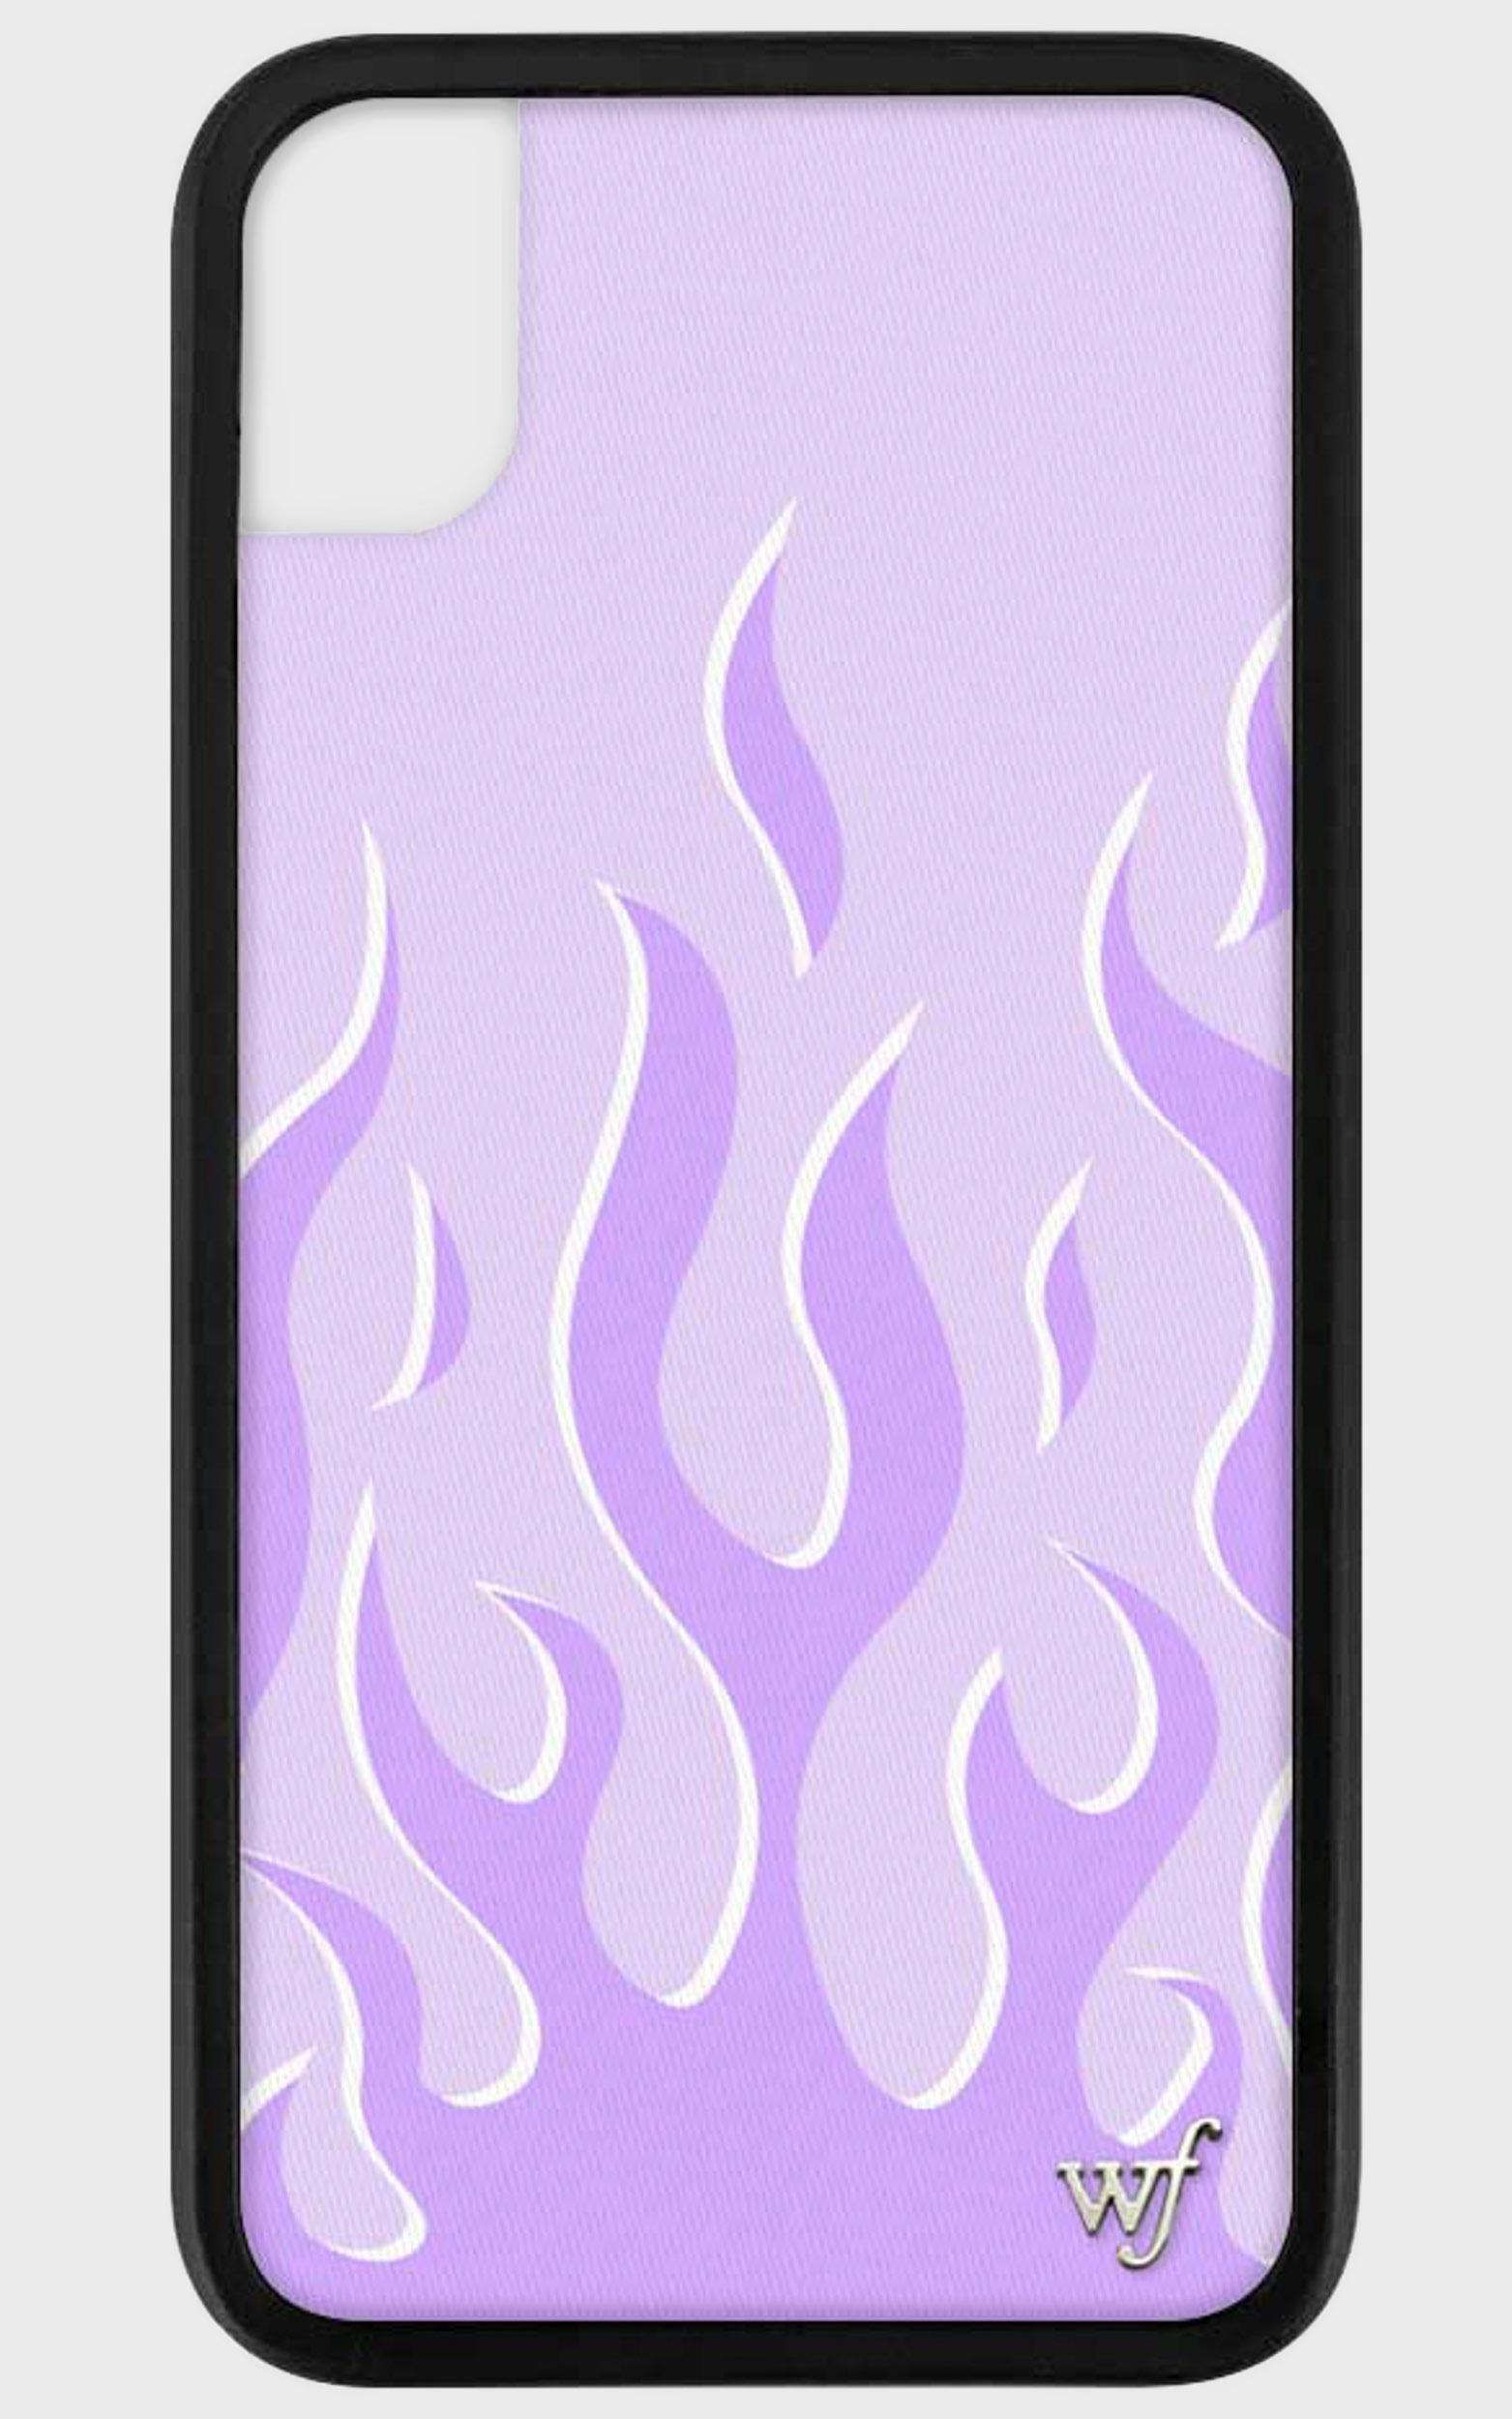 Wildflower - Iphone Case in Lavender Flames - 8, PRP3, hi-res image number null